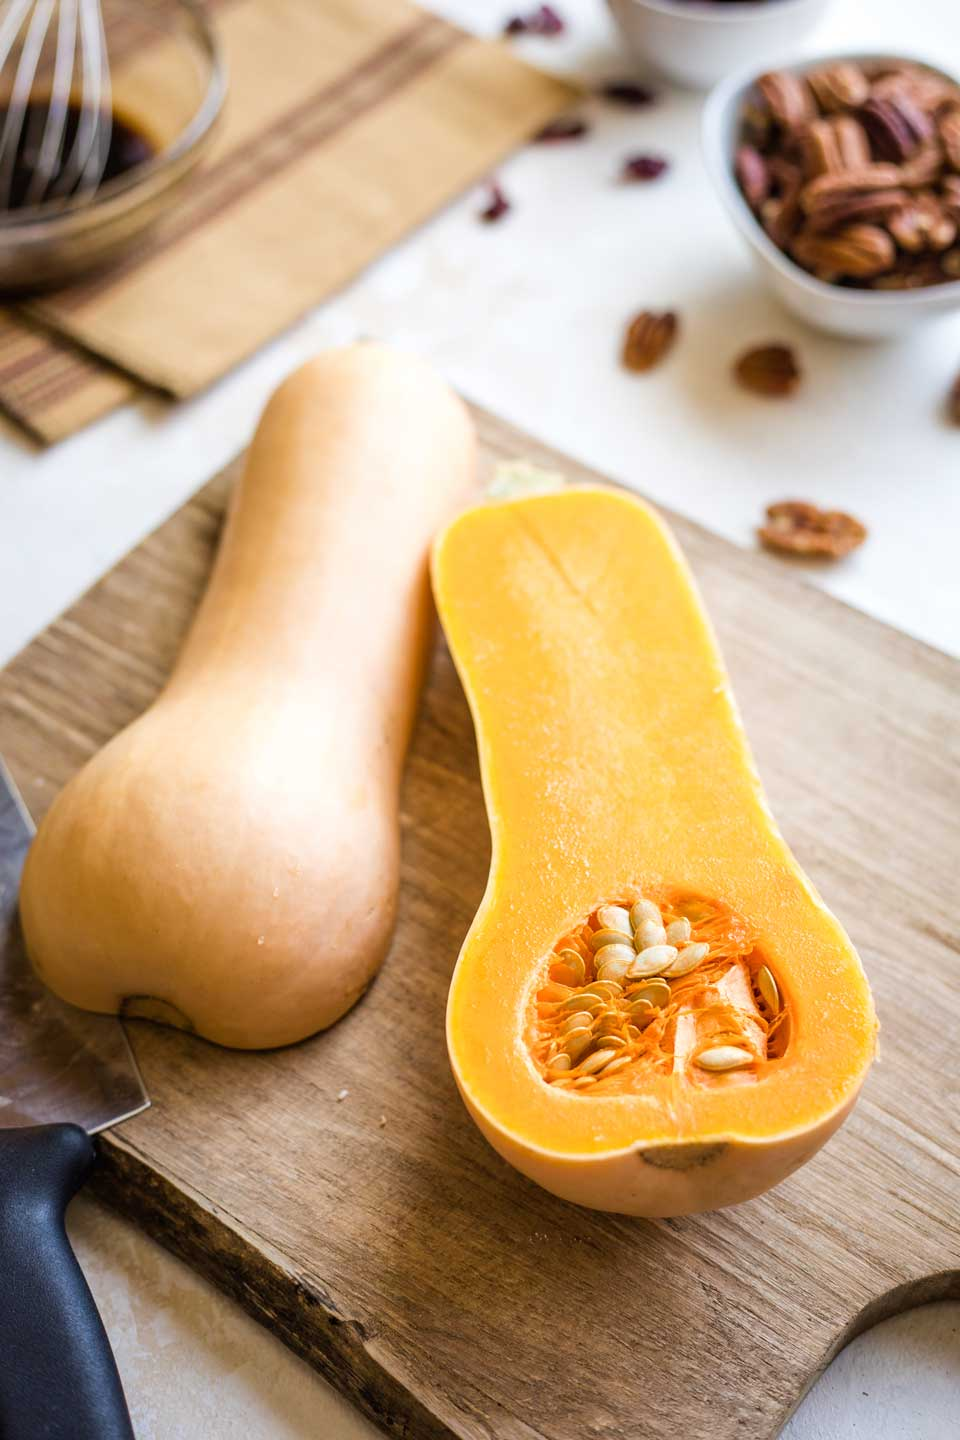 butternut squash on cutting board, cut open vertically from stem to bottom